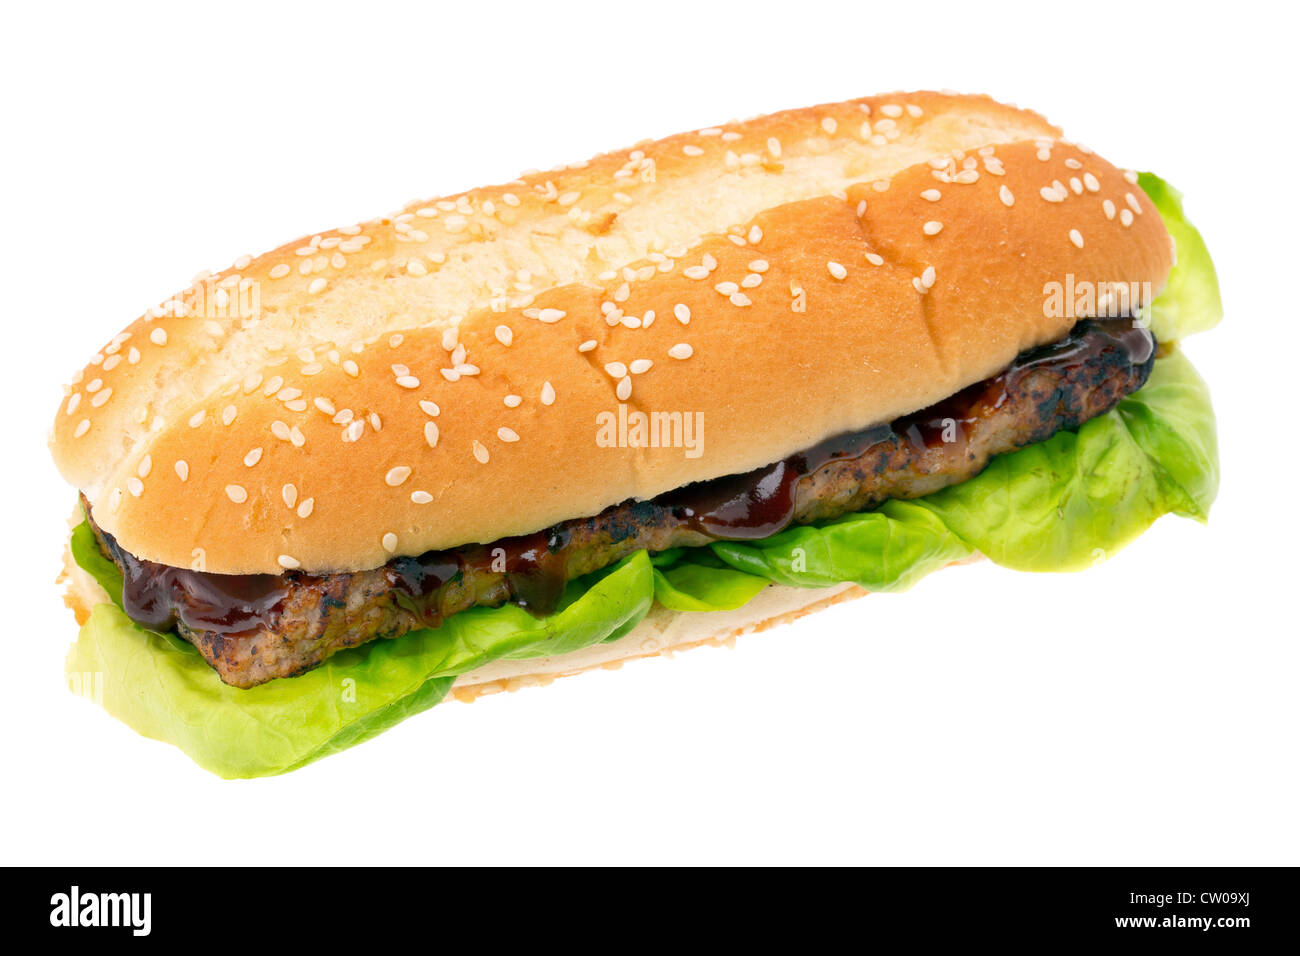 BBQ spare rib burger sandwich - studio shot with a white background - Stock Image